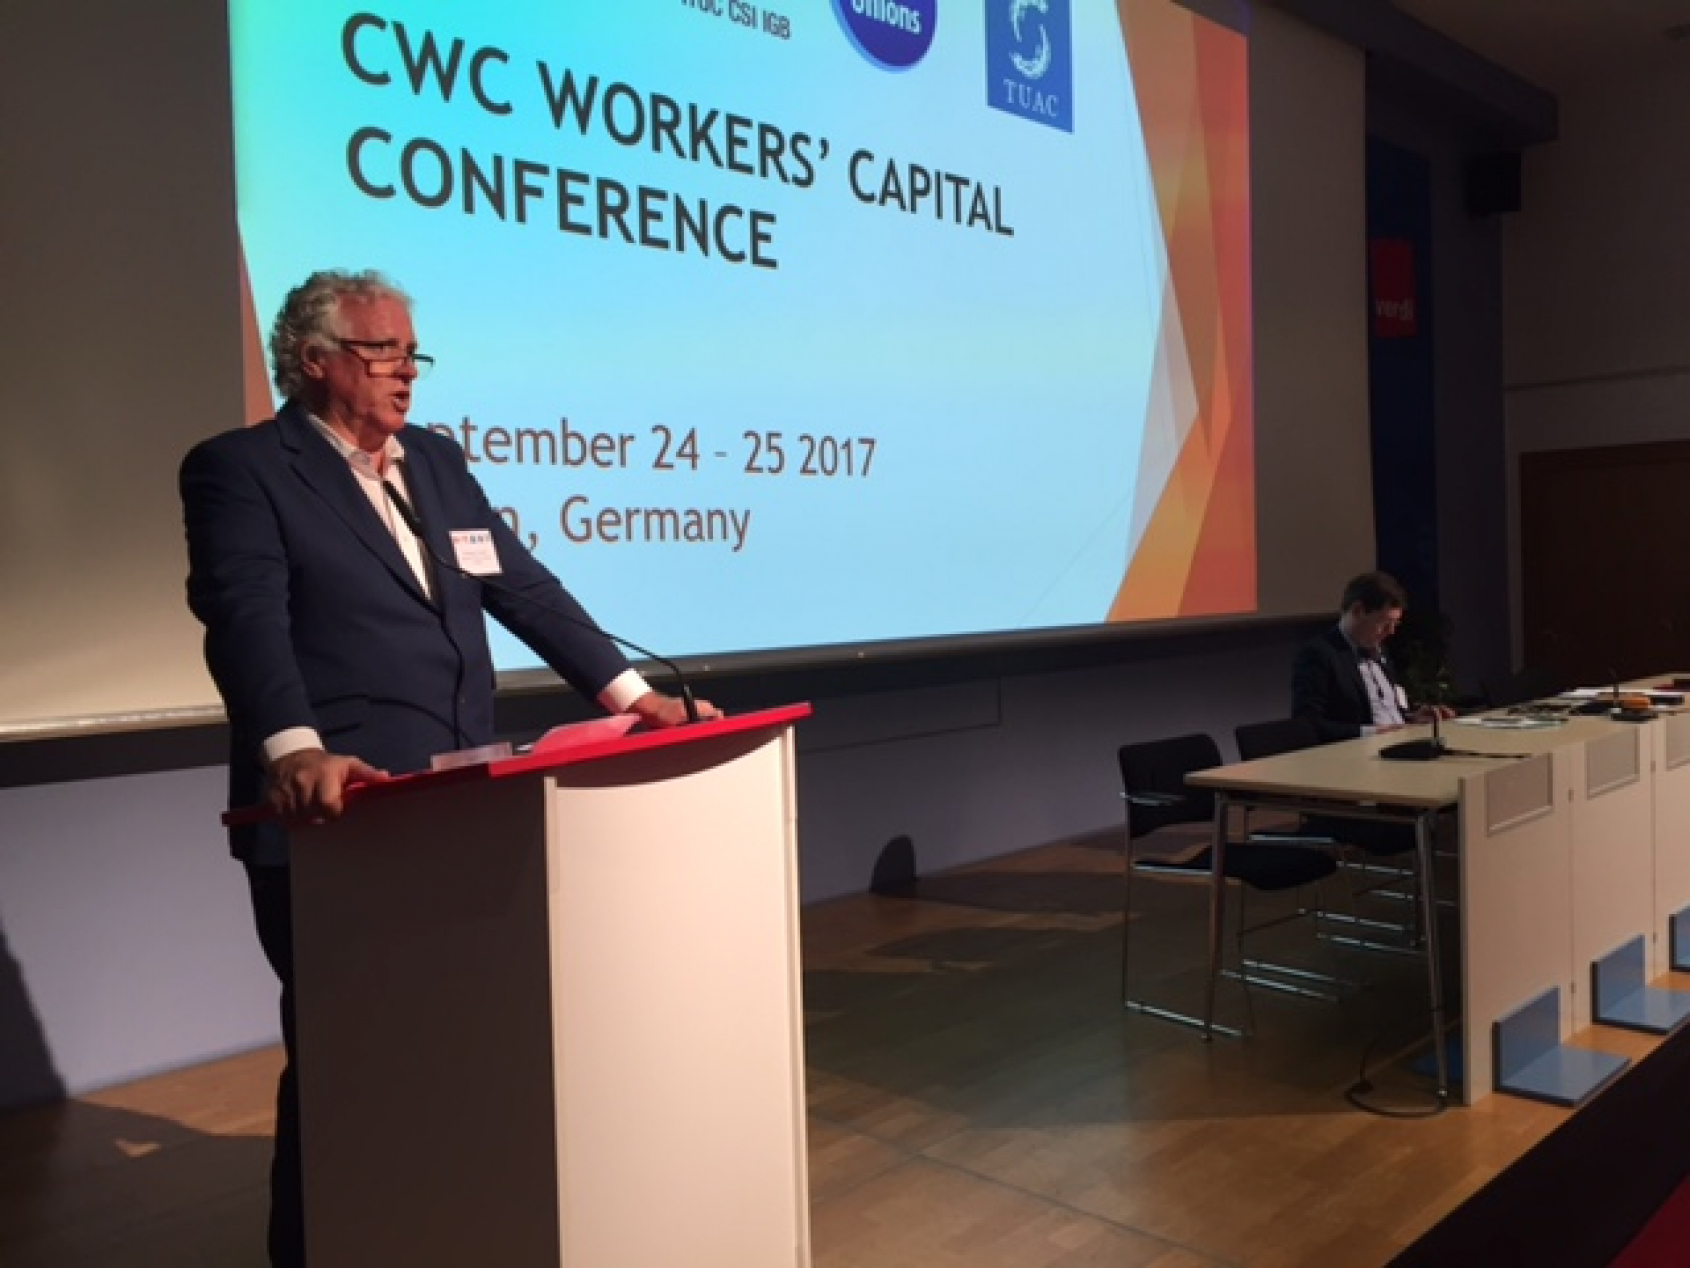 ITF president Paddy Crumlin made the announcement at a meeting of the Committee on Workers' Capital